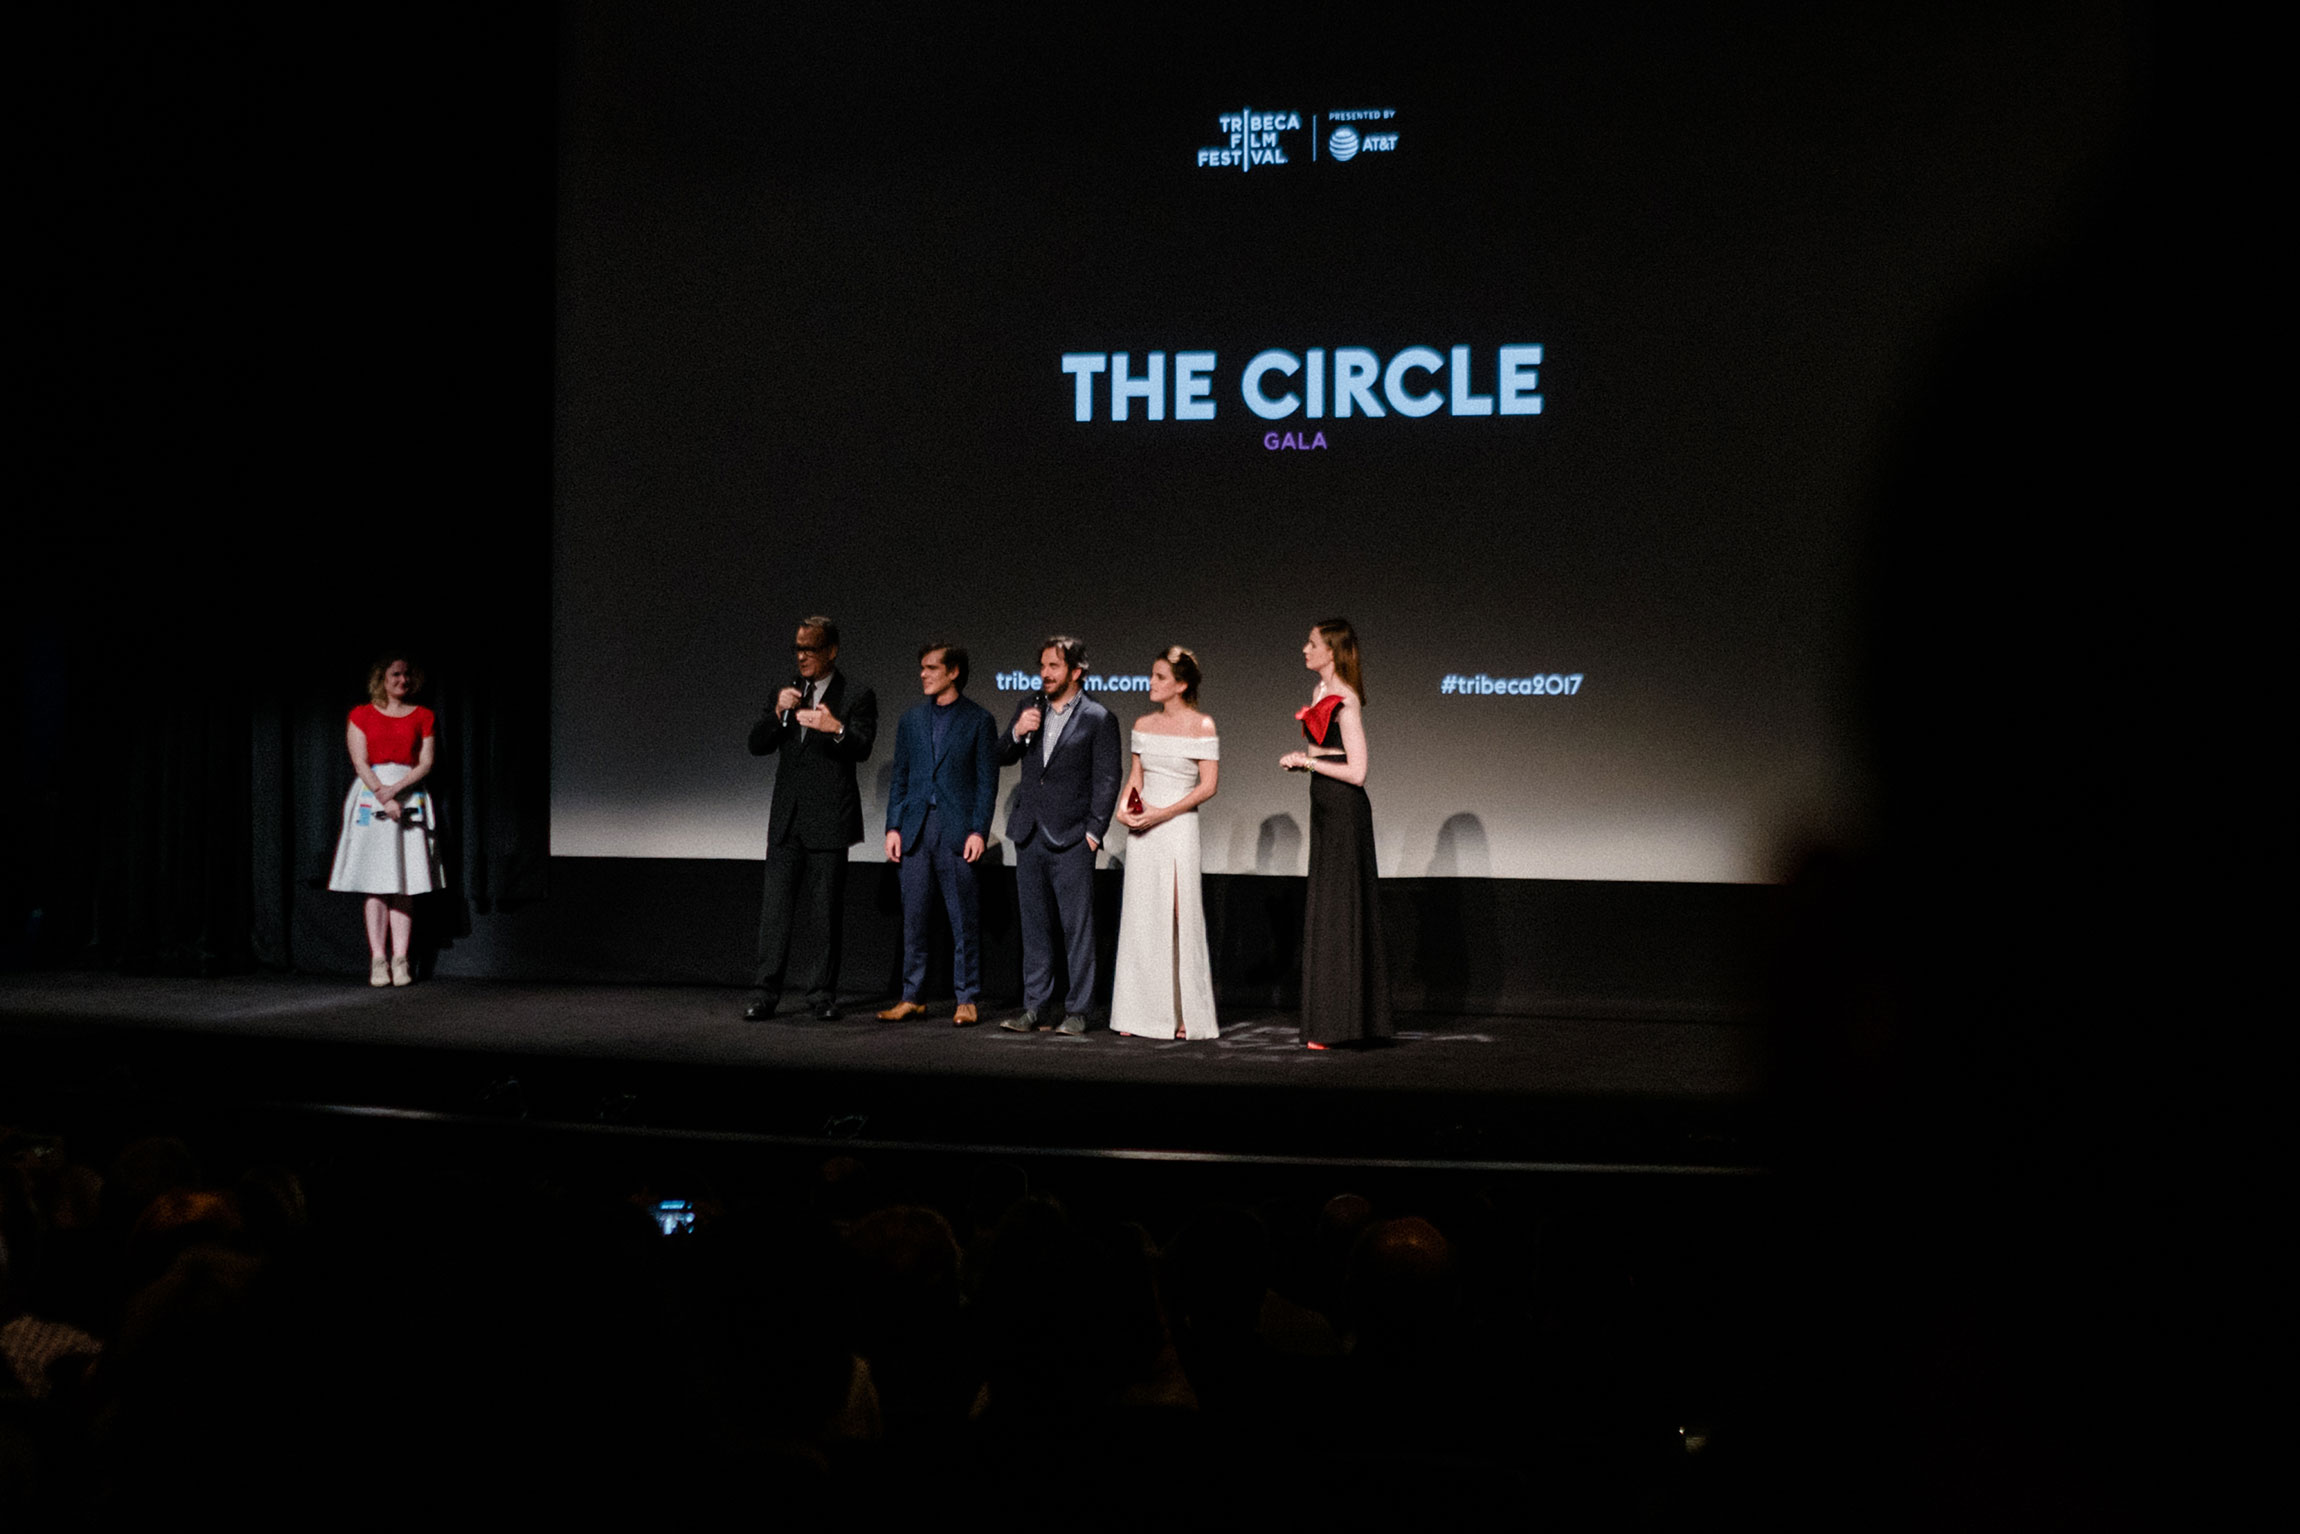 World premiere red carpet gala for The Circle thanks to  Nexxus